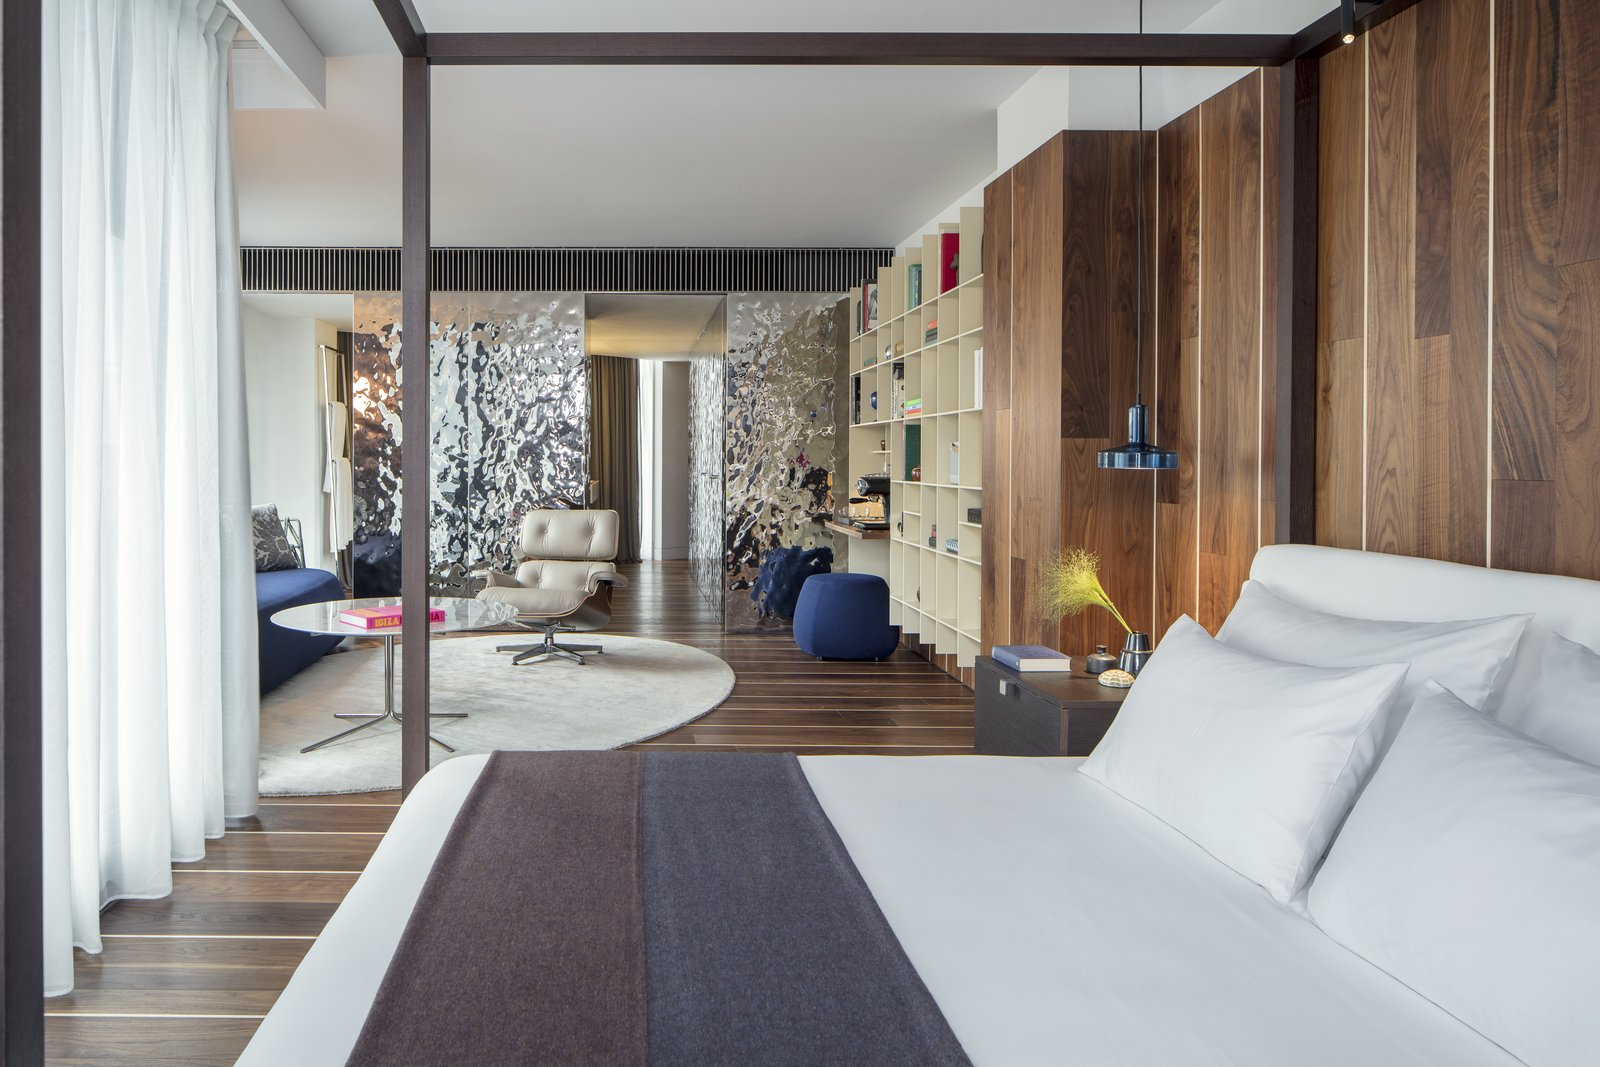 Bedroom, Bed, Pendant Lighting, and Dark Hardwood Floor  Photo 7 of 11 in A New Hotel That Celebrates Ibiza's Maritime History and Love For Parties